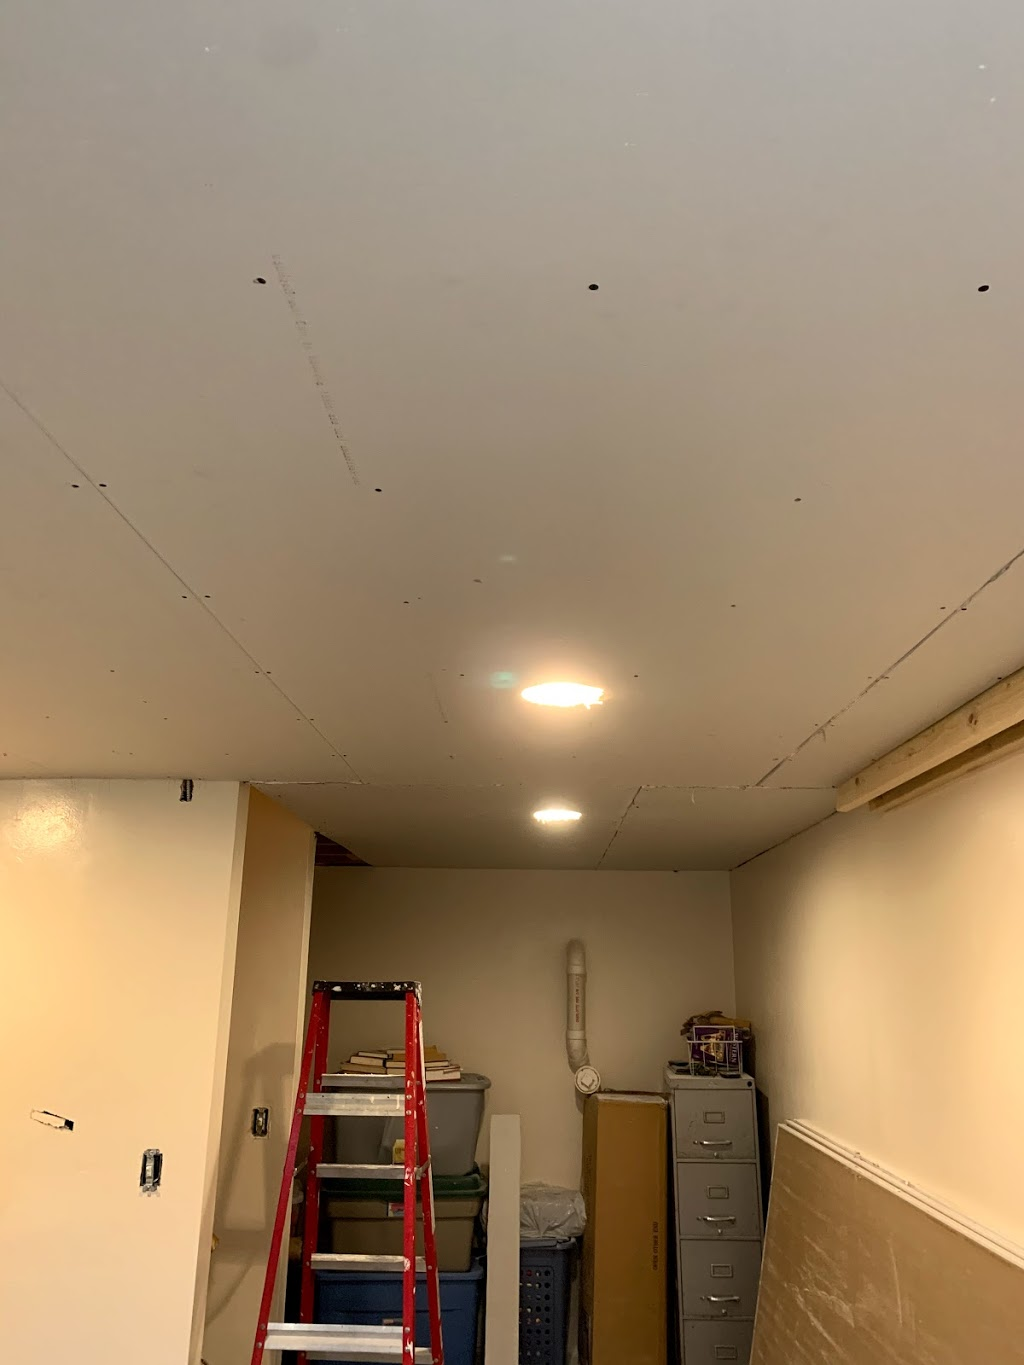 HK Drywall Services Inc. - painter  | Photo 4 of 10 | Address: 4517 W Adams St, Chicago, IL 60624, USA | Phone: (773) 526-3274